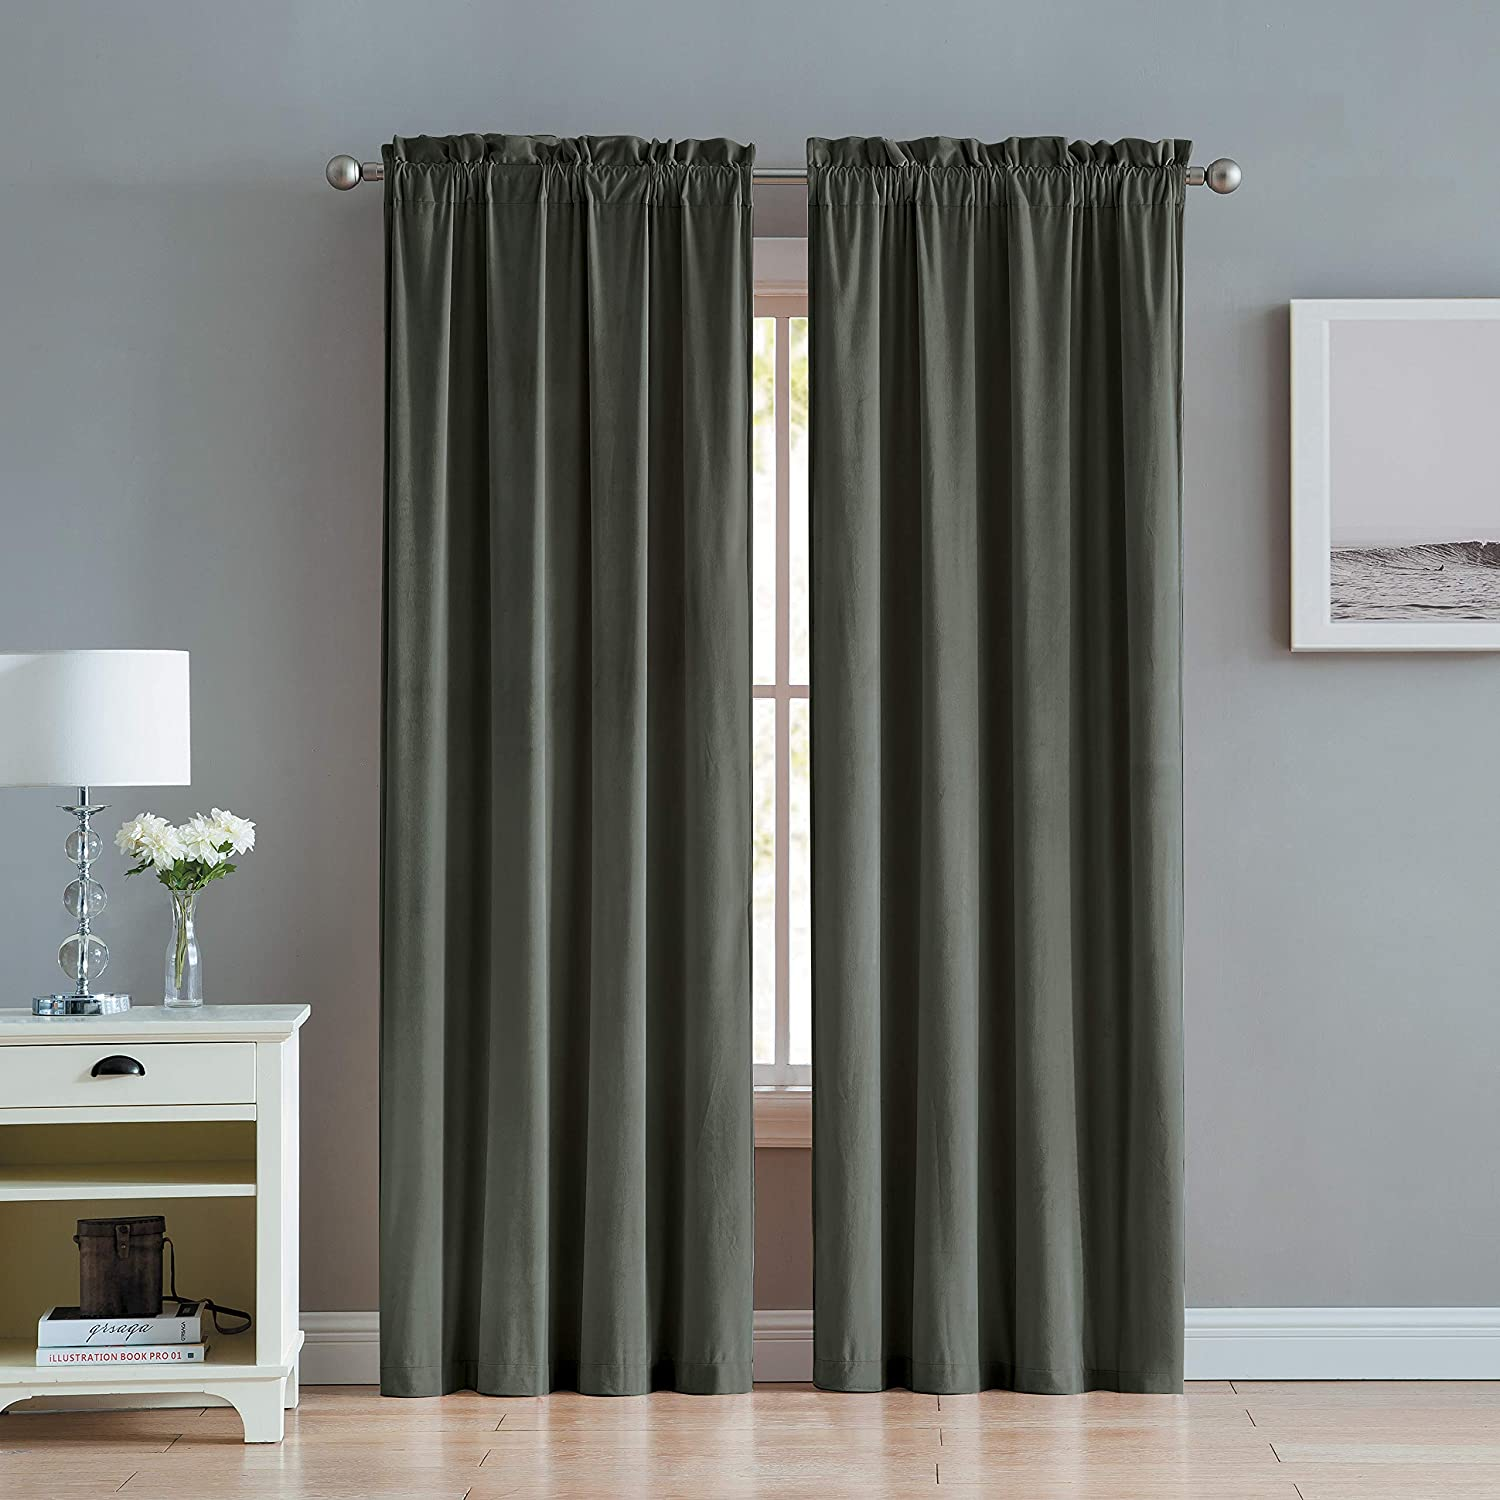 VCNY Home Velvet Window Curtains, 38x84, Charcoal